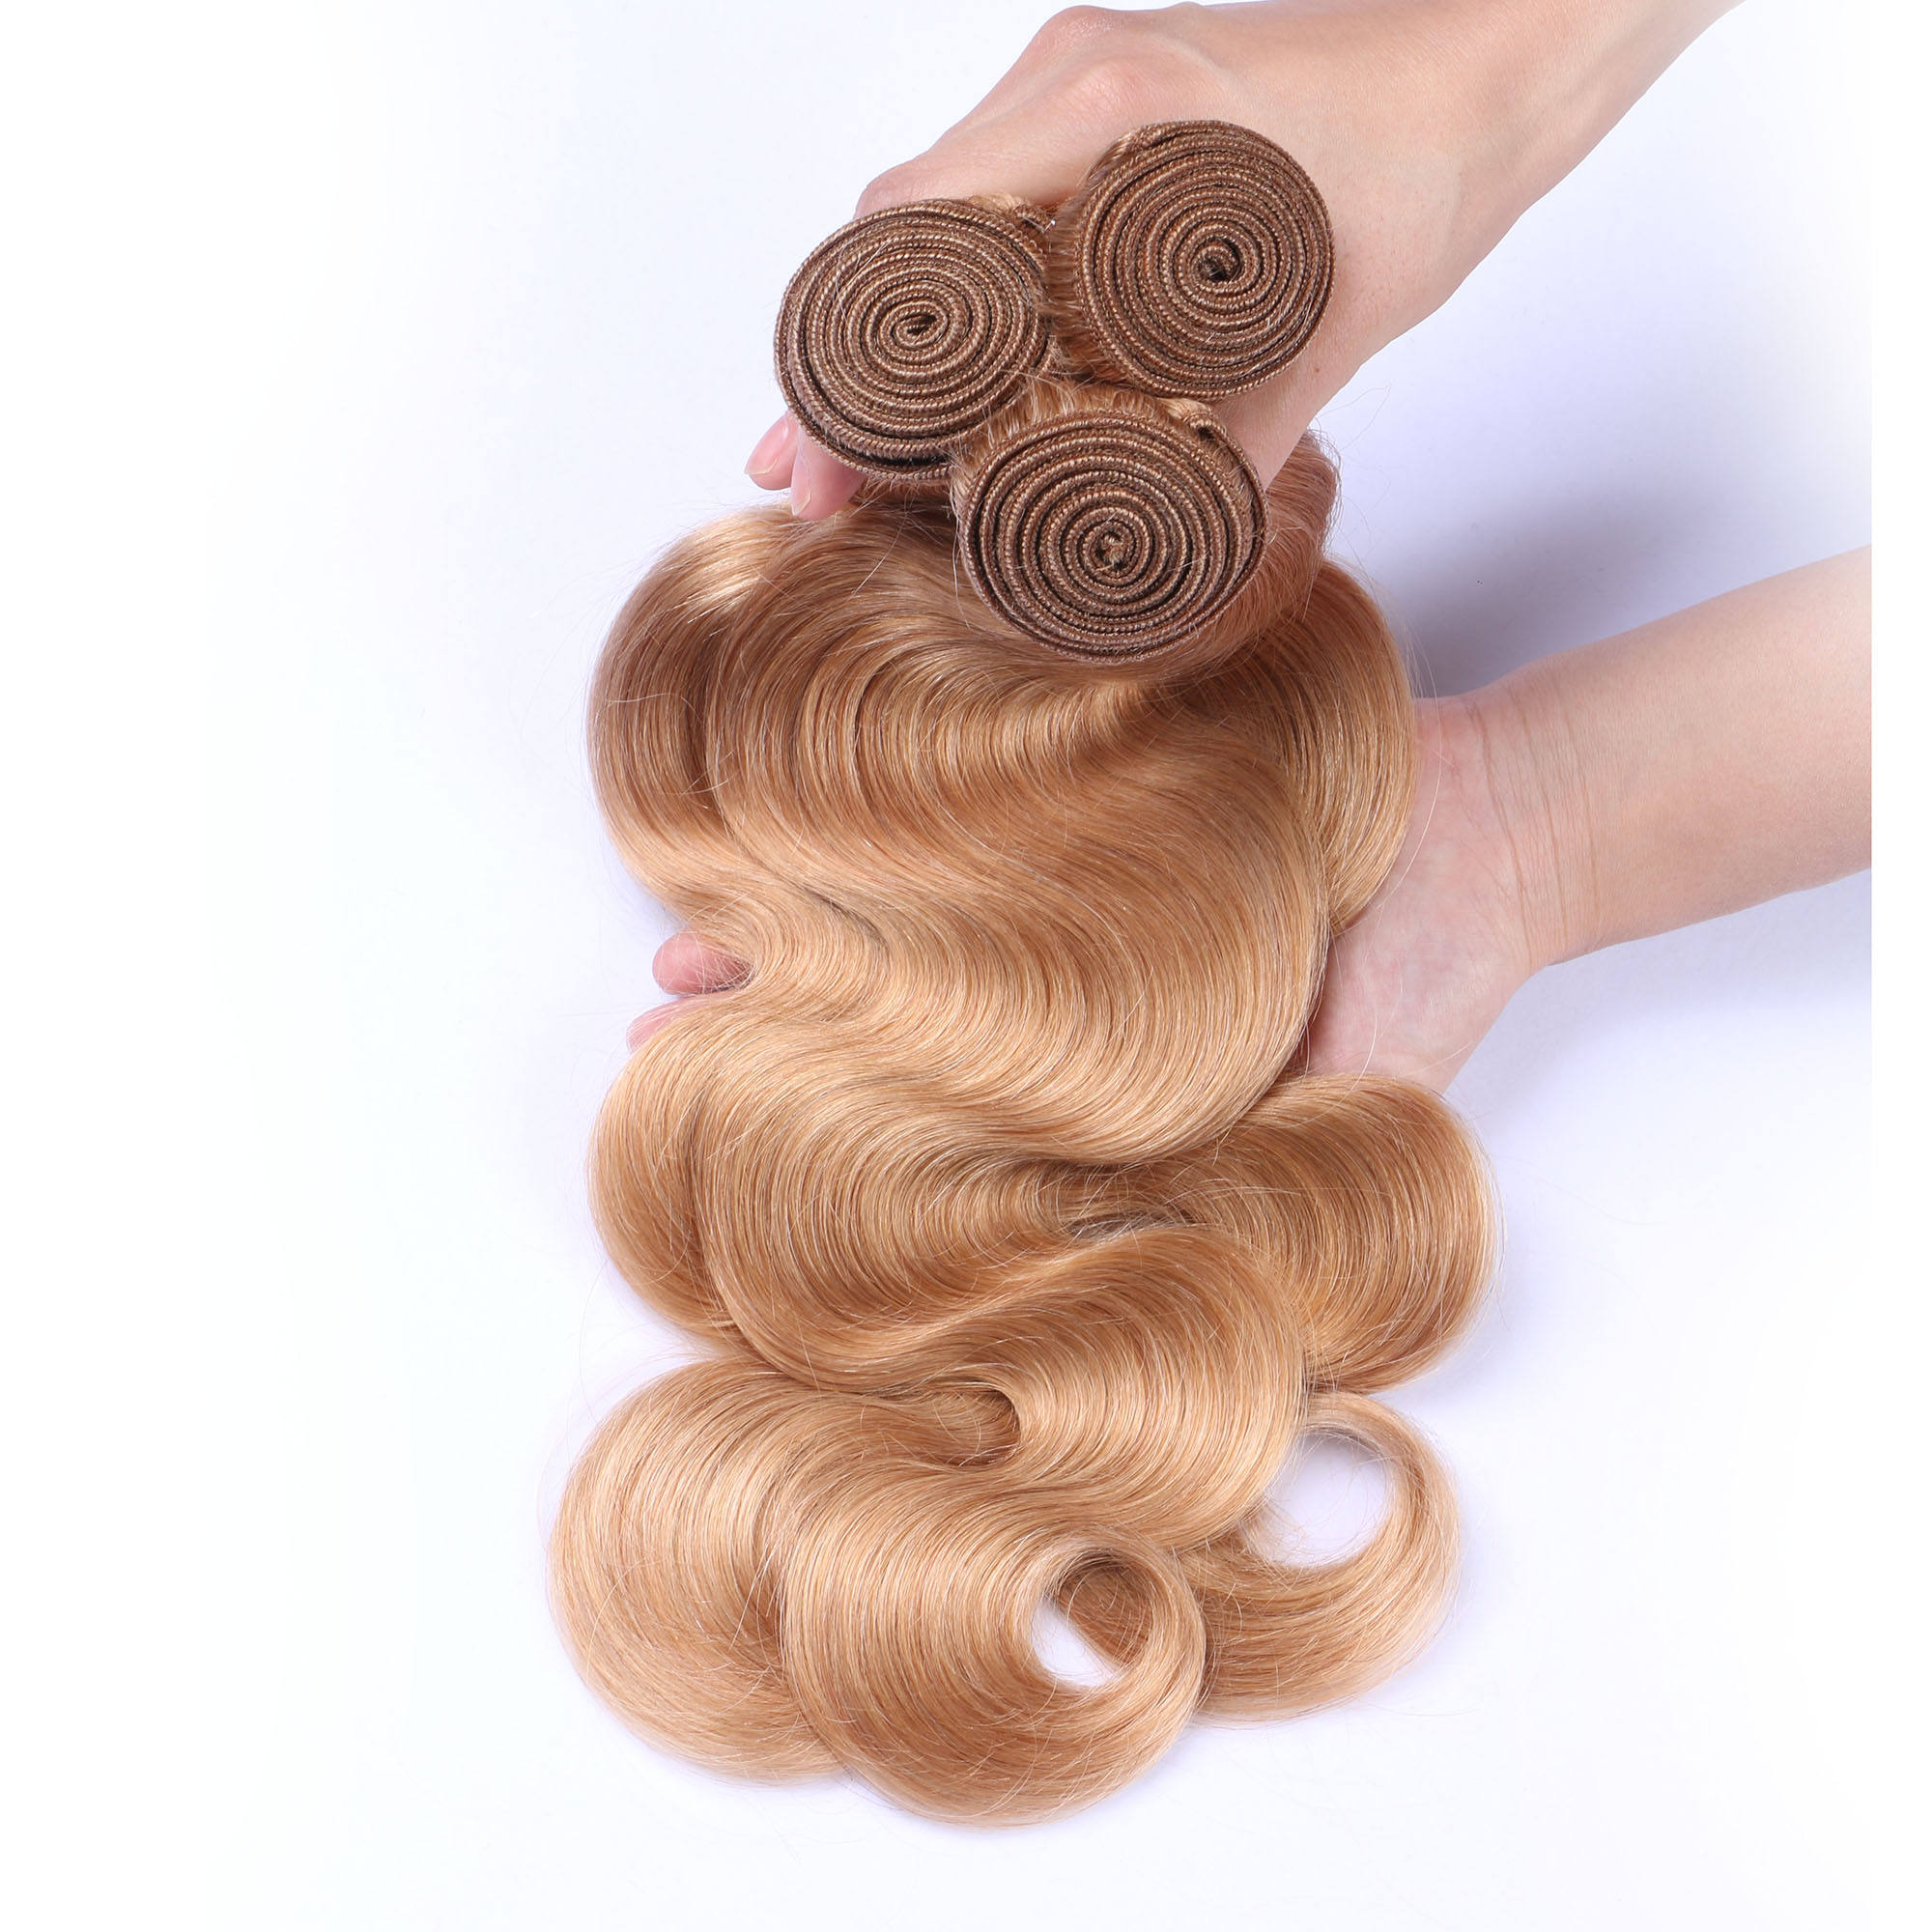 Promotion 5A Remy Cuticle Aligned Cheap Virgin Hair Extensions,Remy Hair Weave,Wholesale Wigs 100% Human Hair